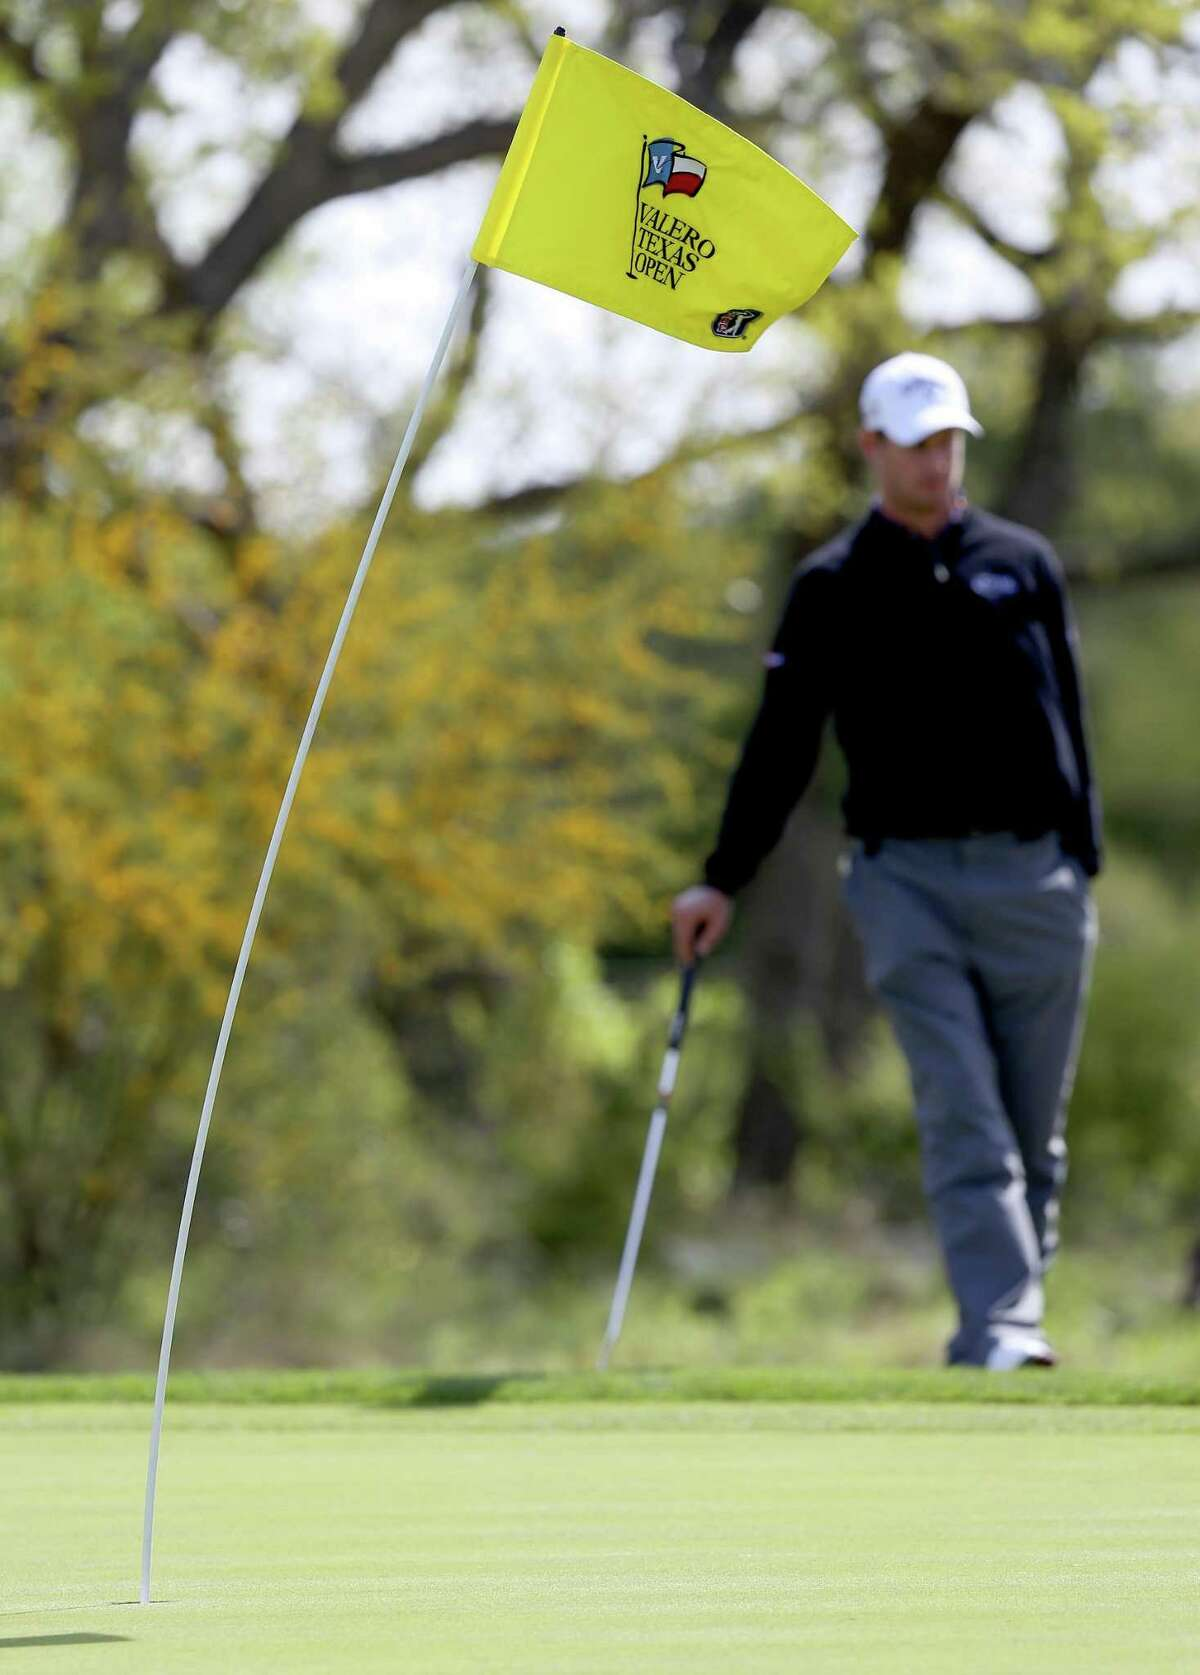 The first tee flag is blown to the side March 26, 2015 at the Texas Open by strong winds associated with a cold front during the first round of the tournament. The Open is contributing heavily to The First Tee.